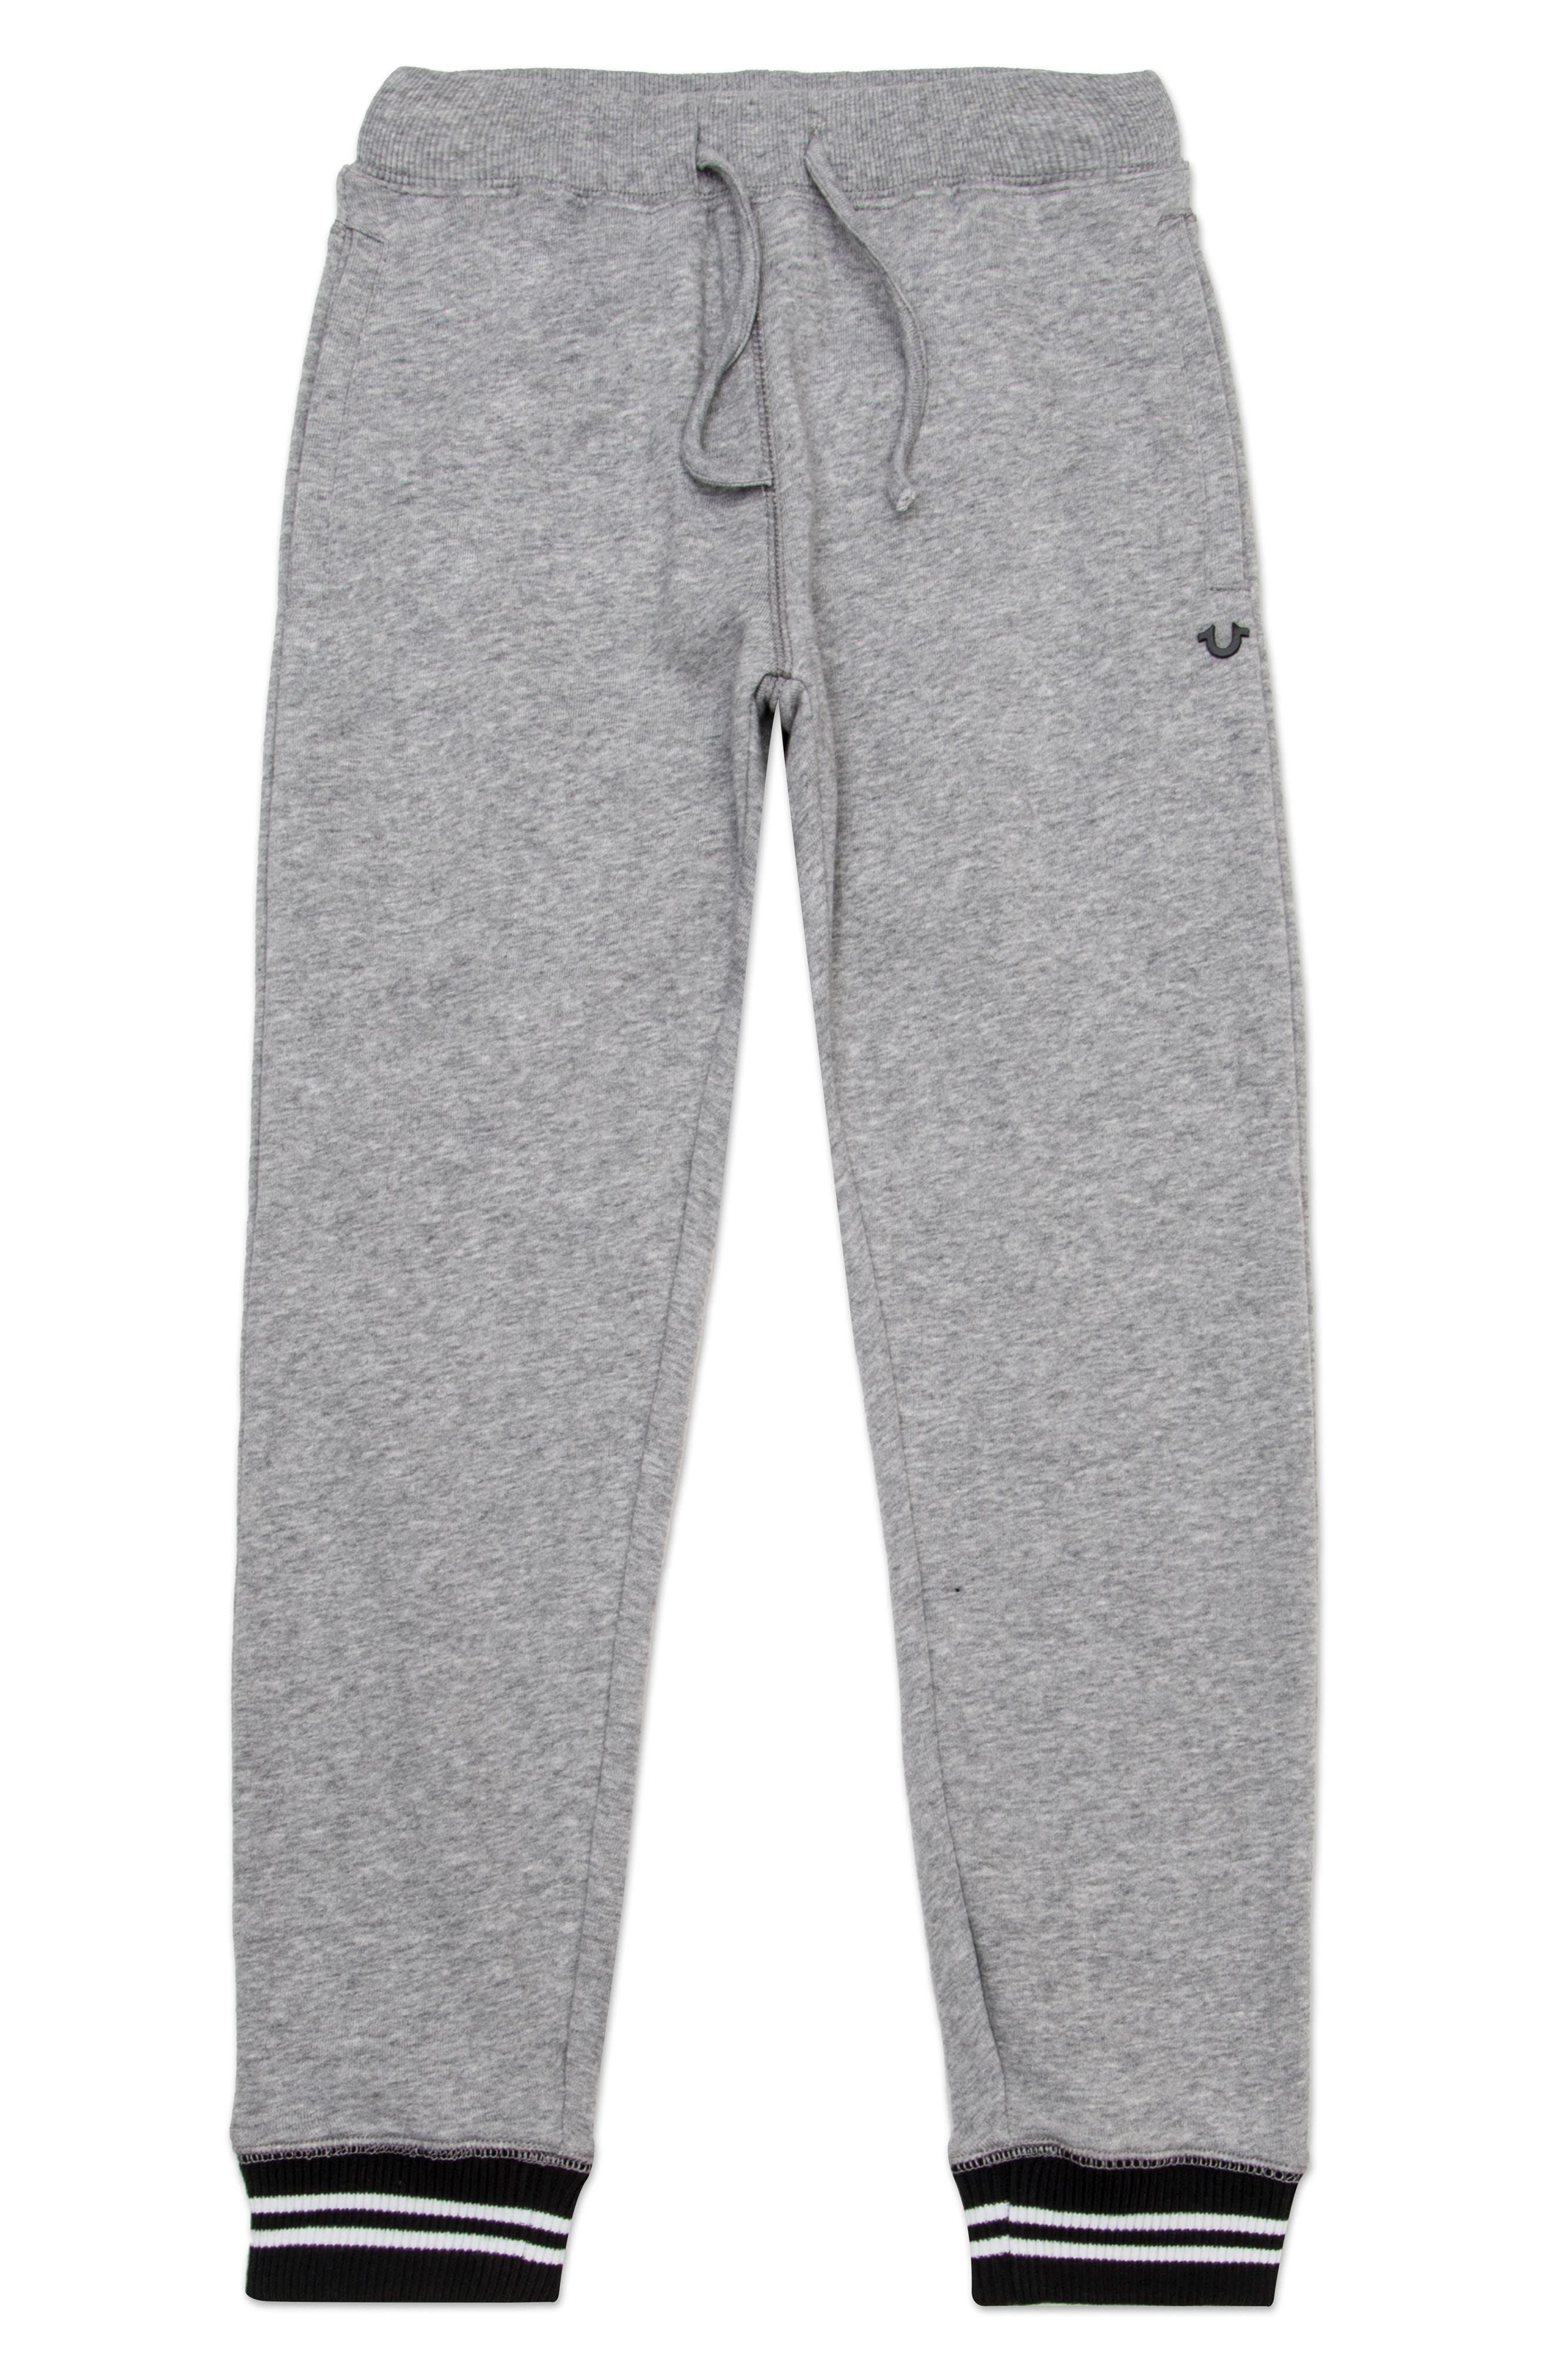 Alternate Image 1 Selected - True Religion Brand Jeans Tipped Sweatpants (Toddler Boys & Little Boys)